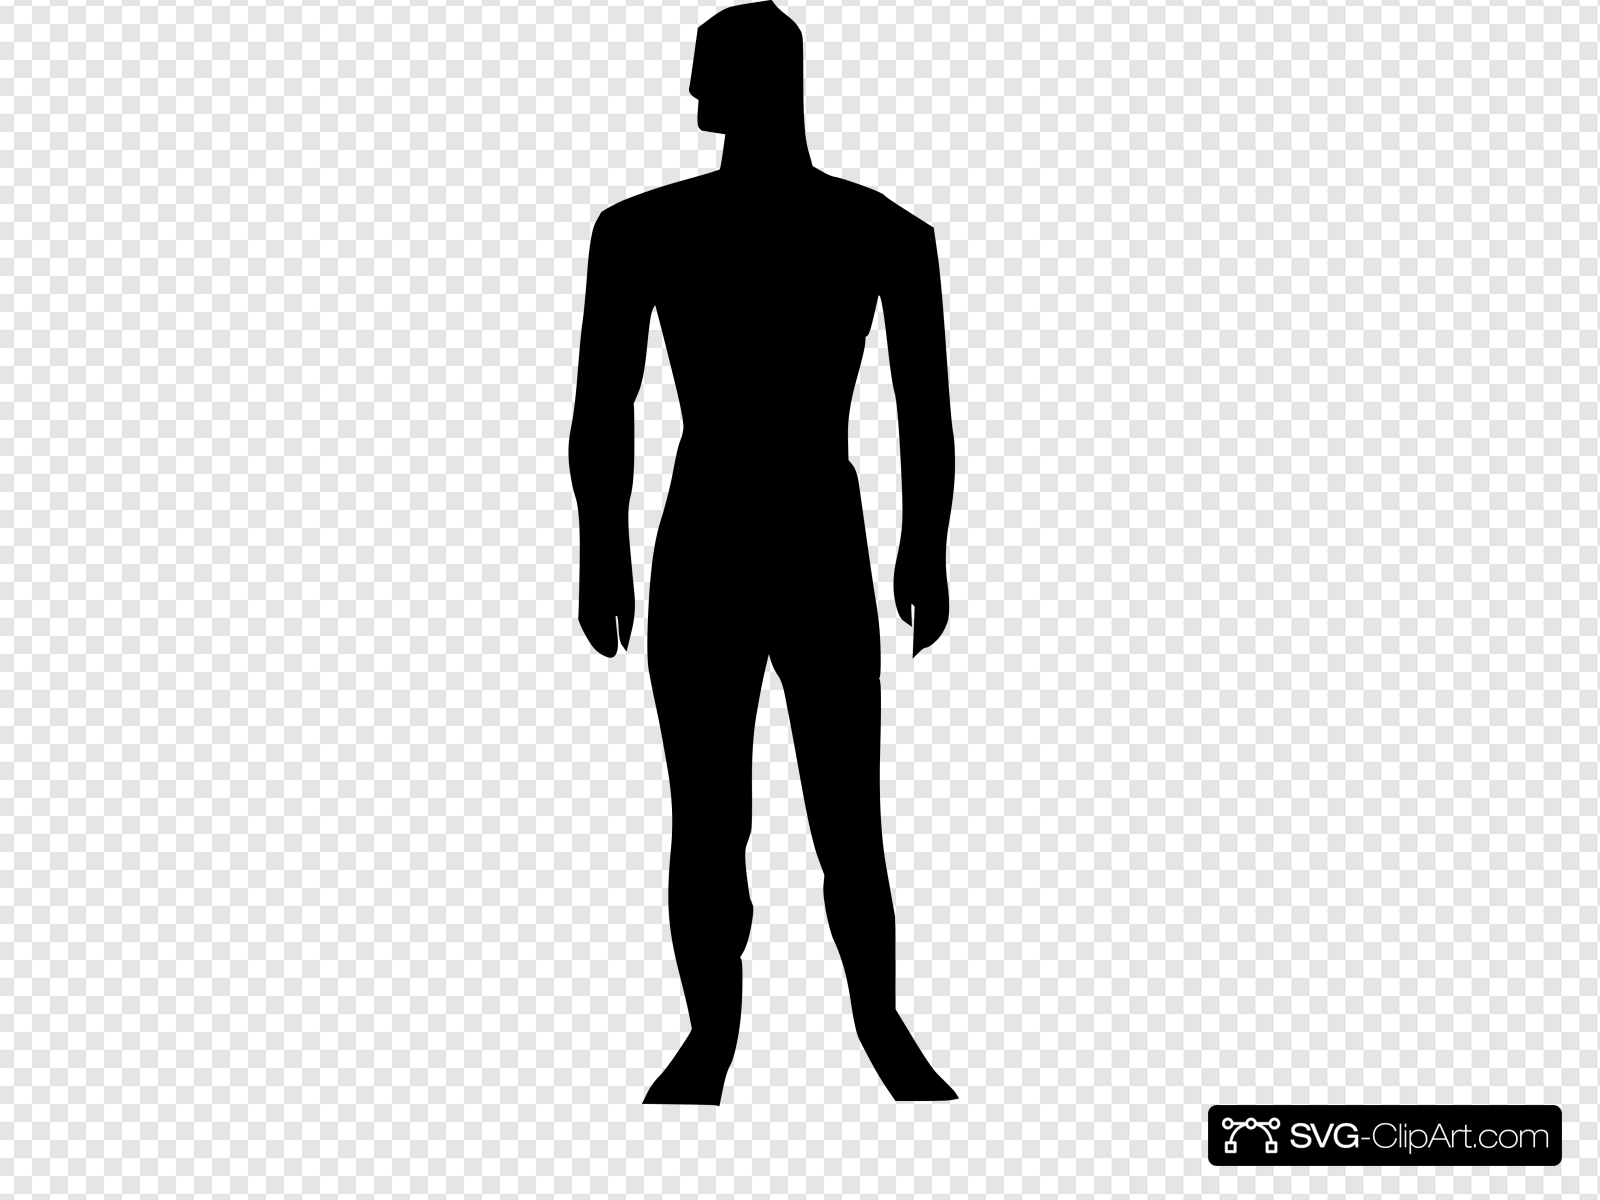 Human Body Silhouette Medical Illustration Clip art, Icon.